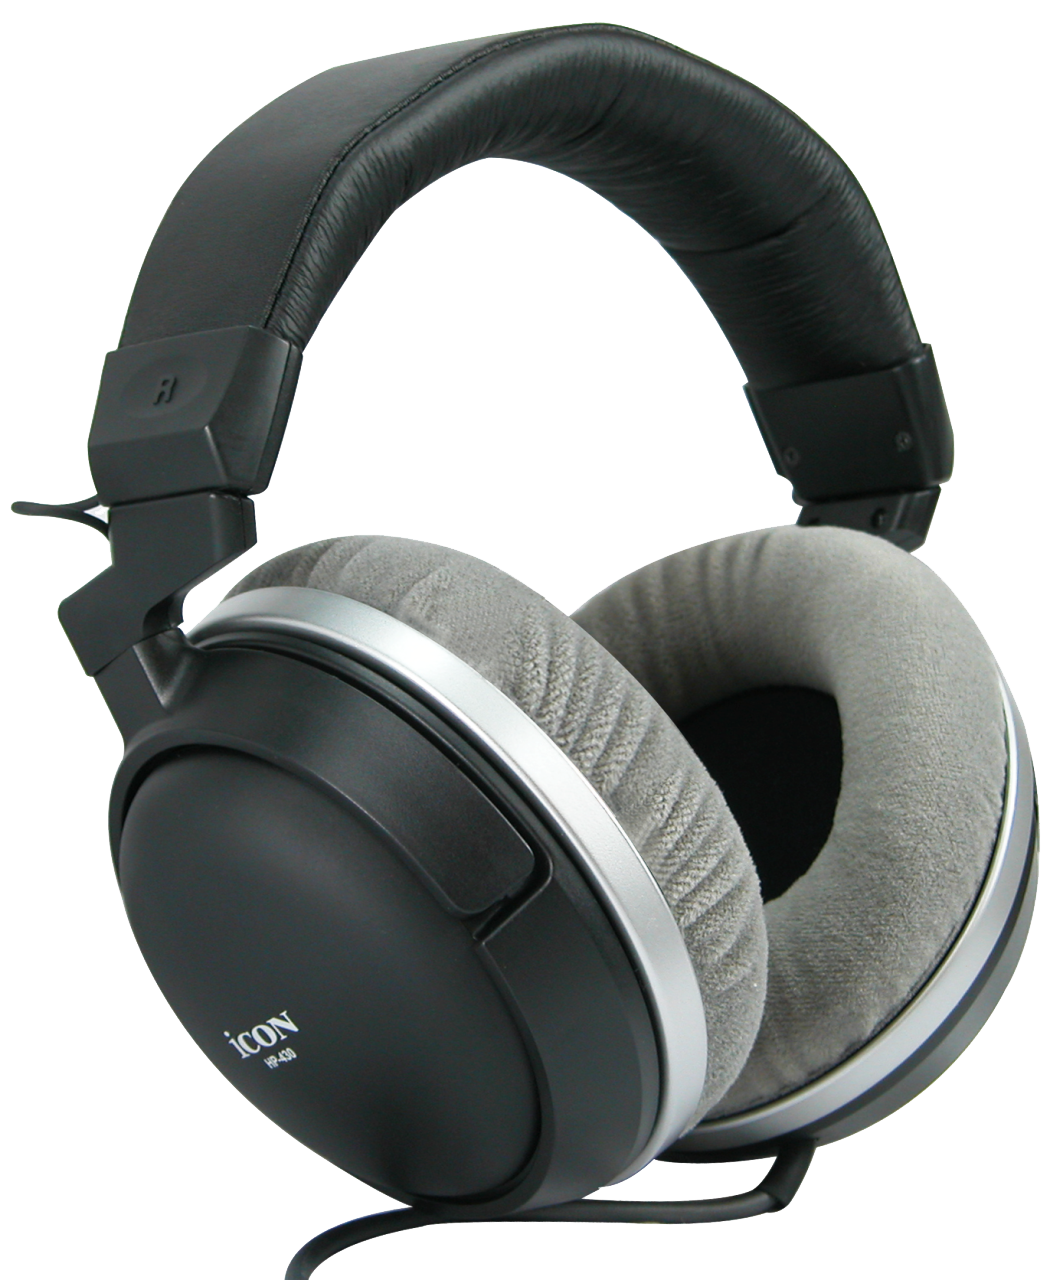 Headphone clipart output device Download Headphones image PNG images